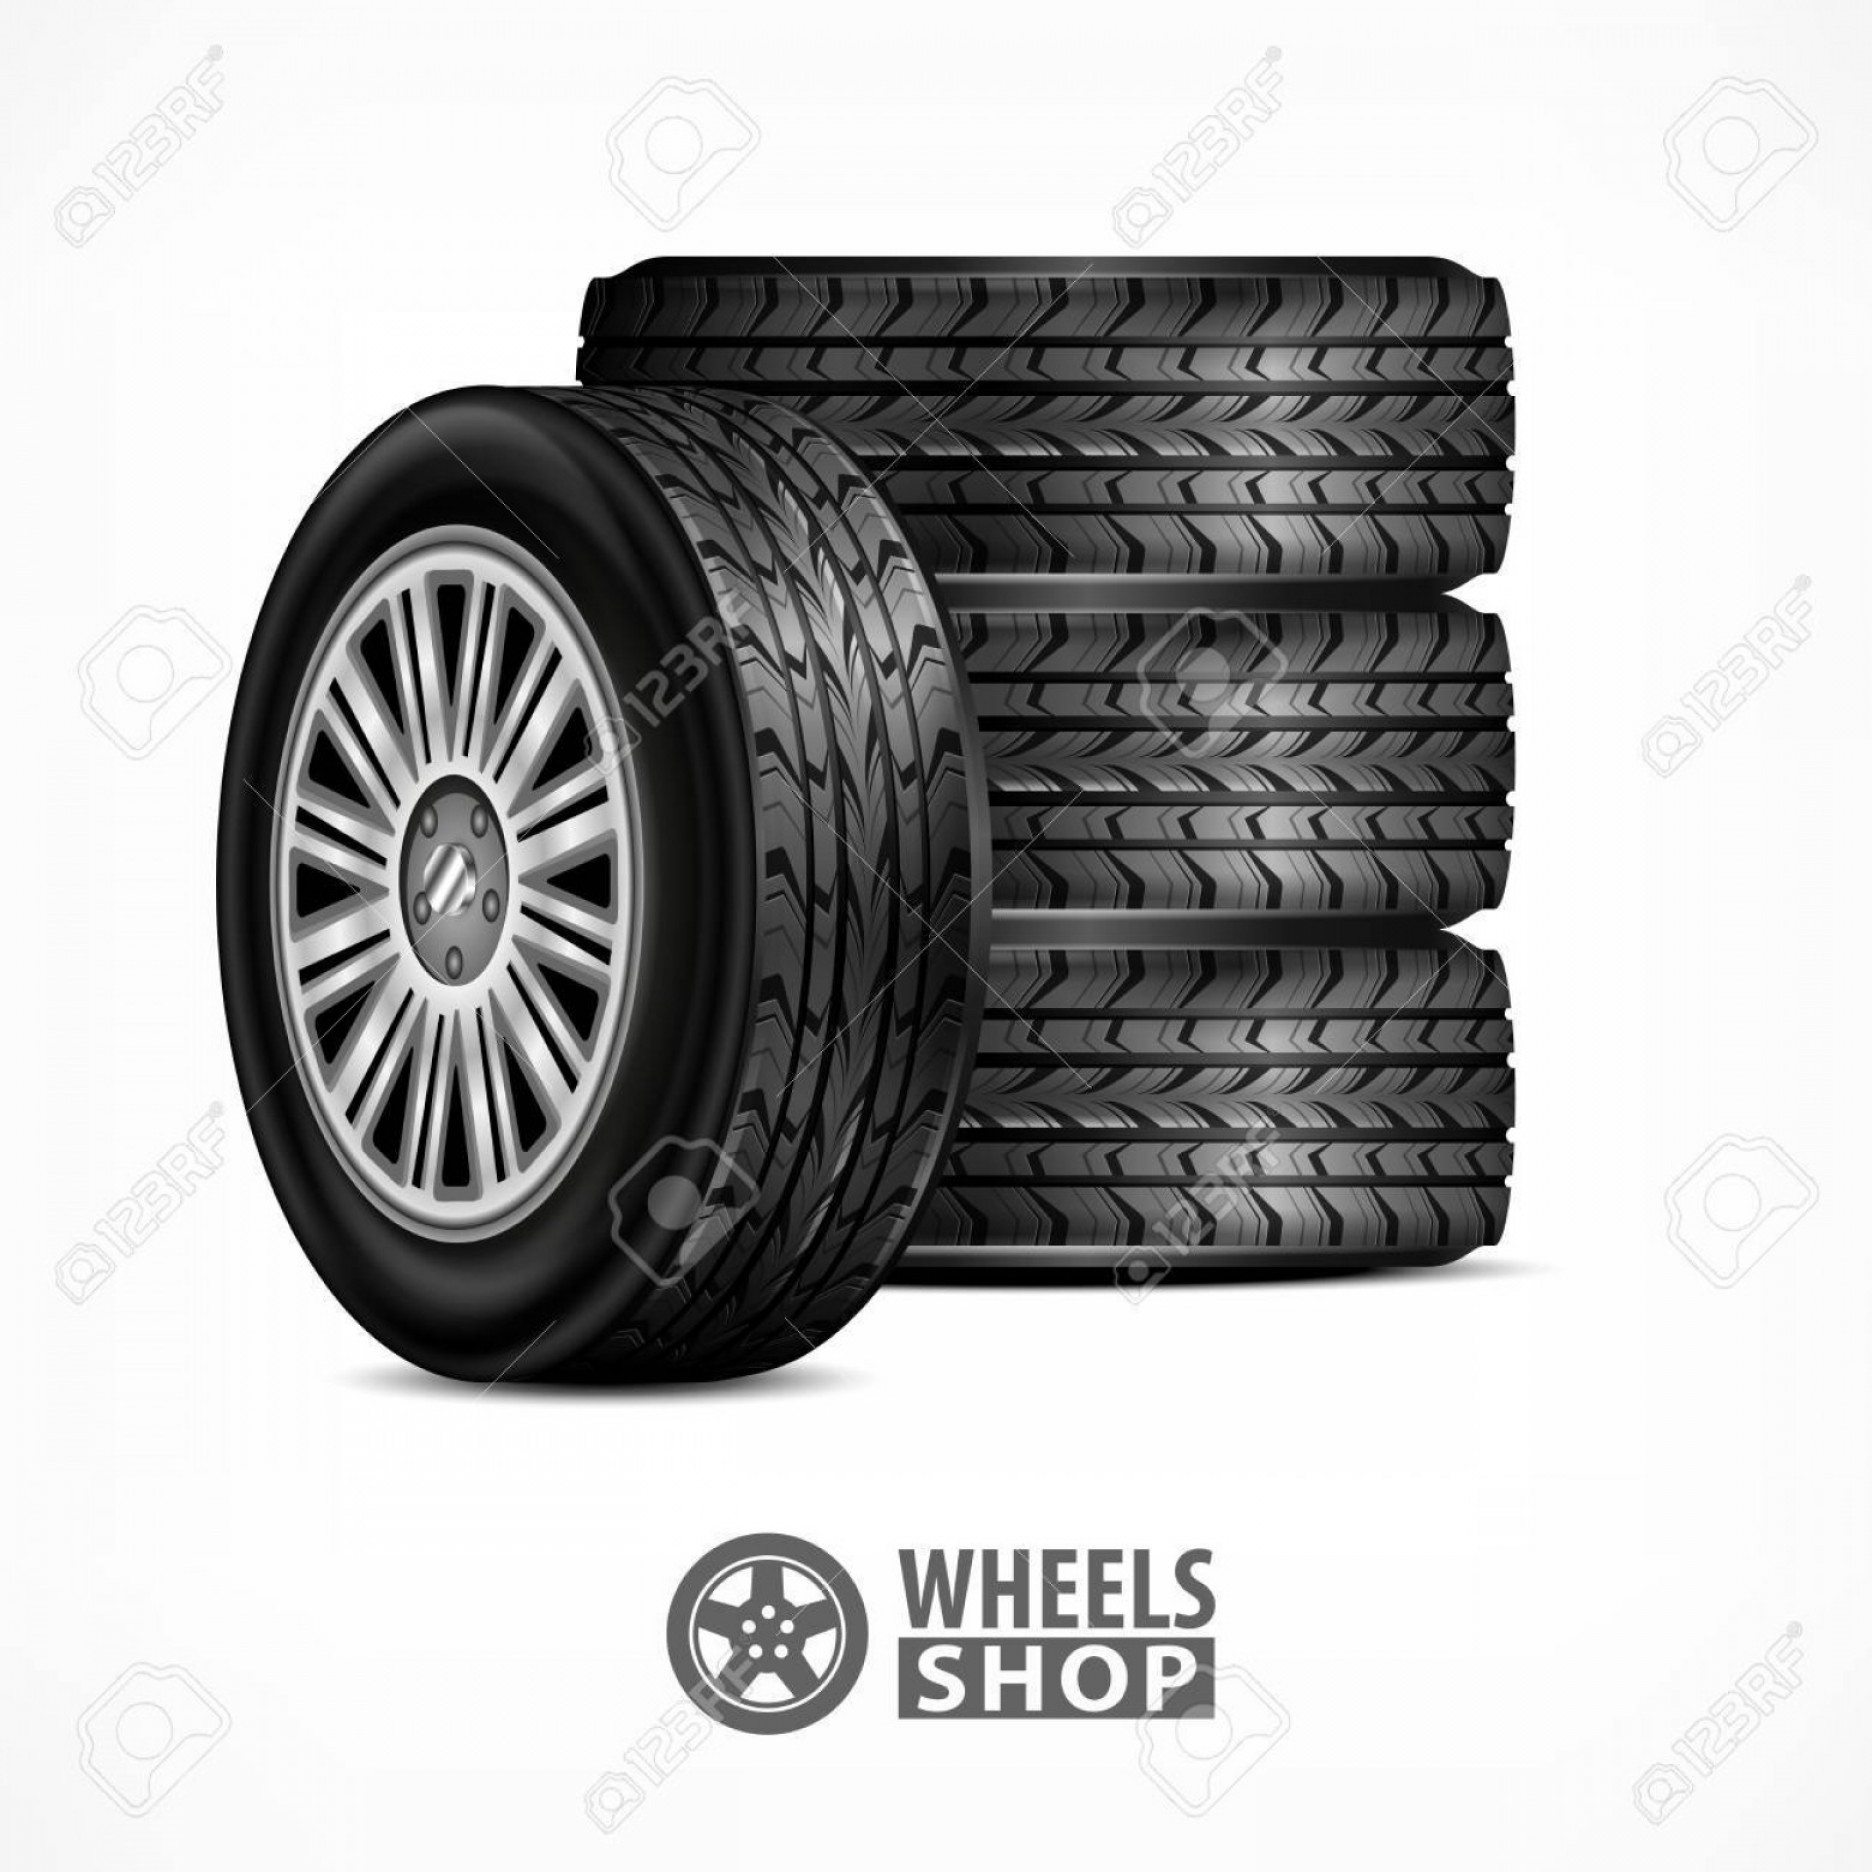 American Racing Vector Rims: Photostock Vector Different Car Black New Rubber Wheels On White Background Tyres And Wheels For Racing Concept Vector